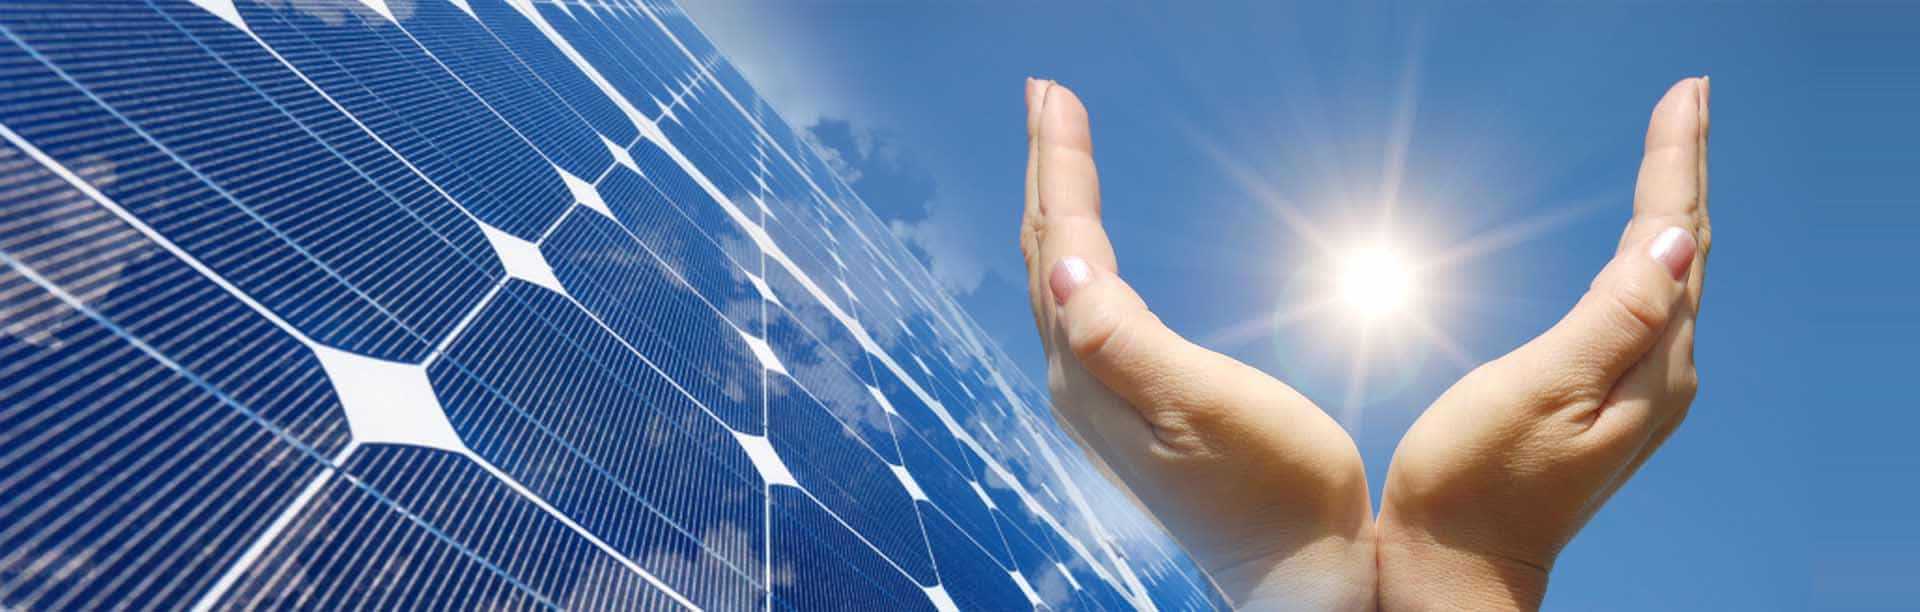 solar panel background image with covering solar in hand